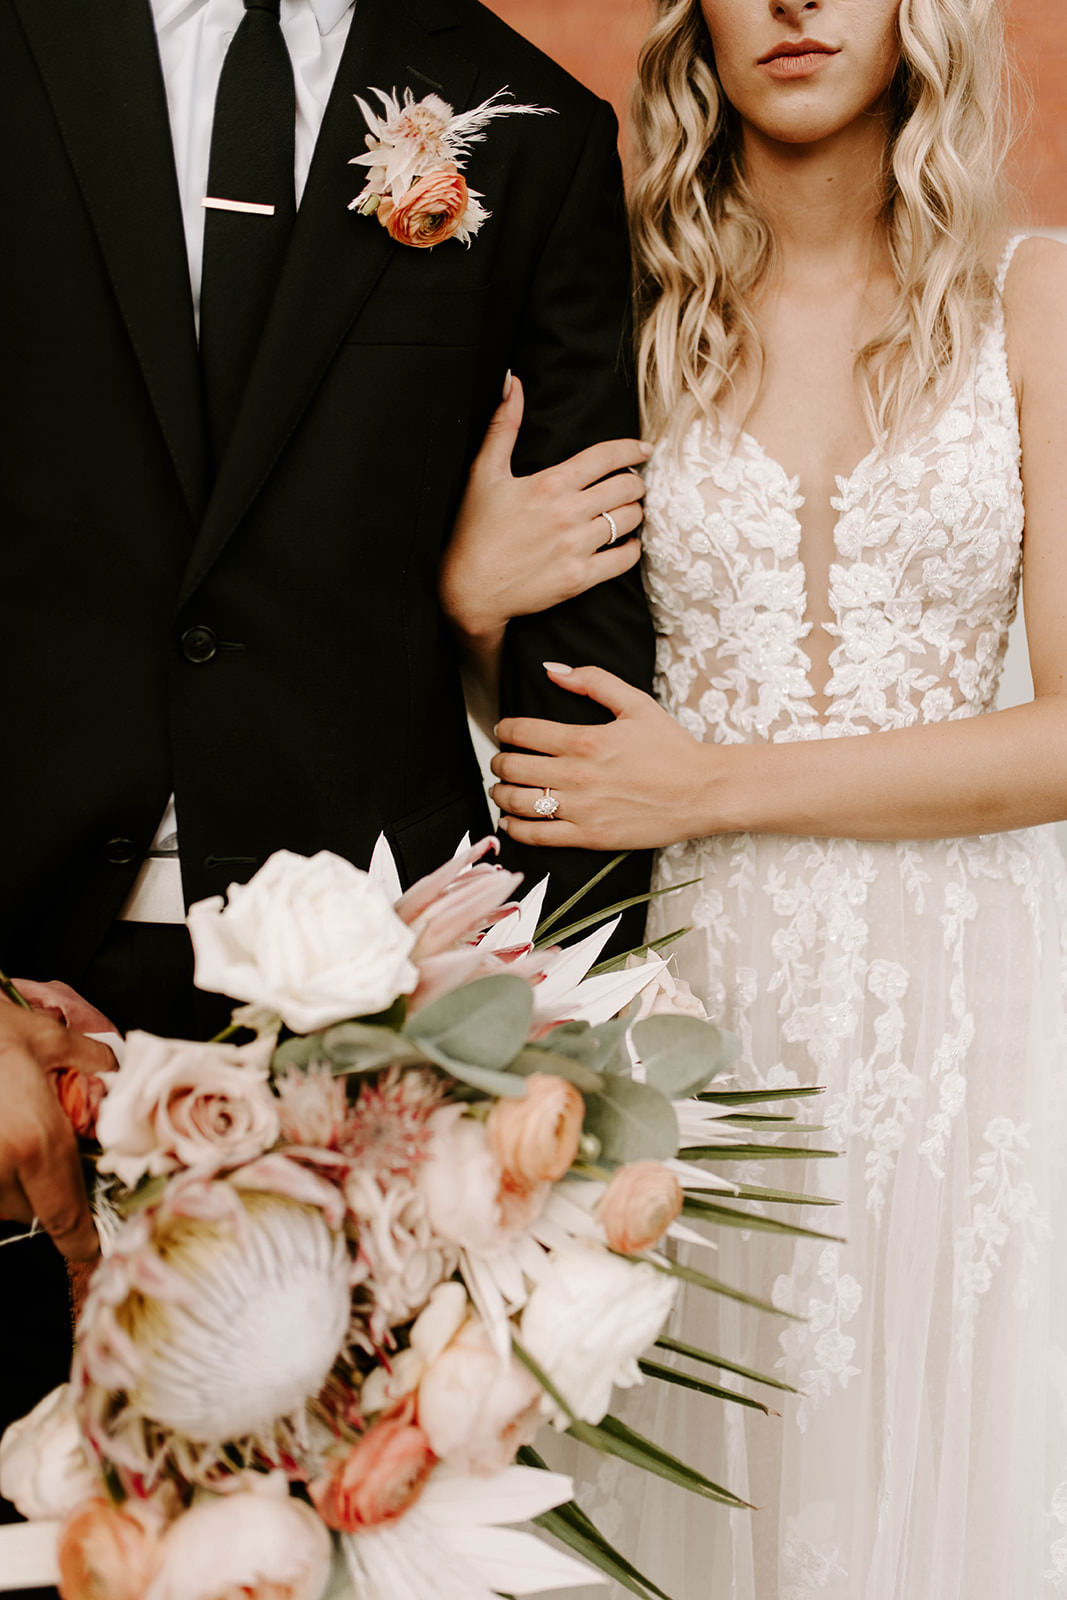 Boho Bride and Groom Creative Portrait, Groom Holding Bride's Whimsical Blush Pink and Burnt Orange Roses, Palm Tree Leaves, King Protea and White Roses Floral Bouquet